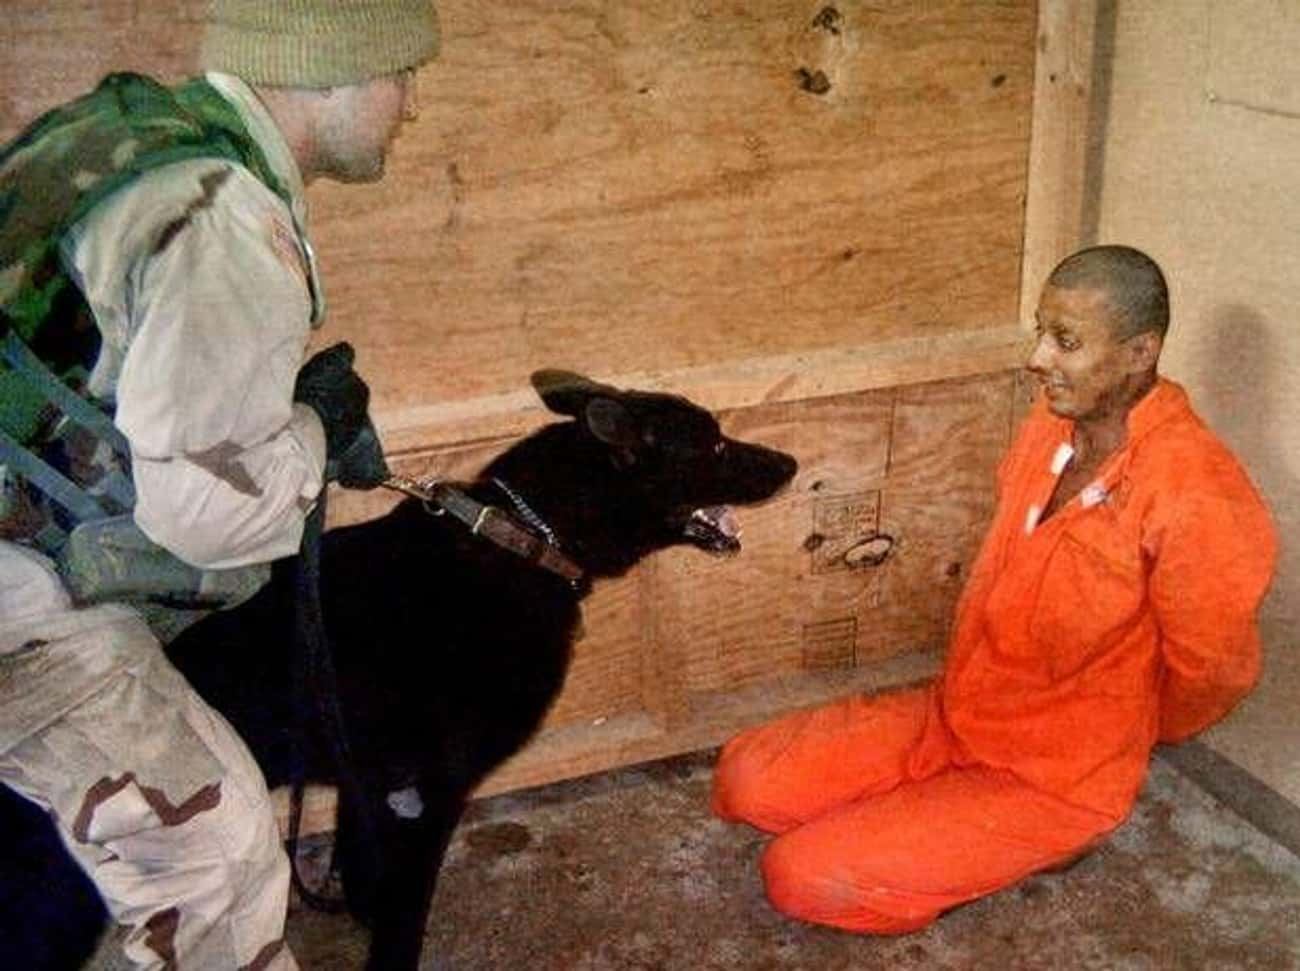 Torture Can Result In Death is listed (or ranked) 4 on the list America's History Of Running Secret Black Site Prisons Is Even Darker Than You'd Think